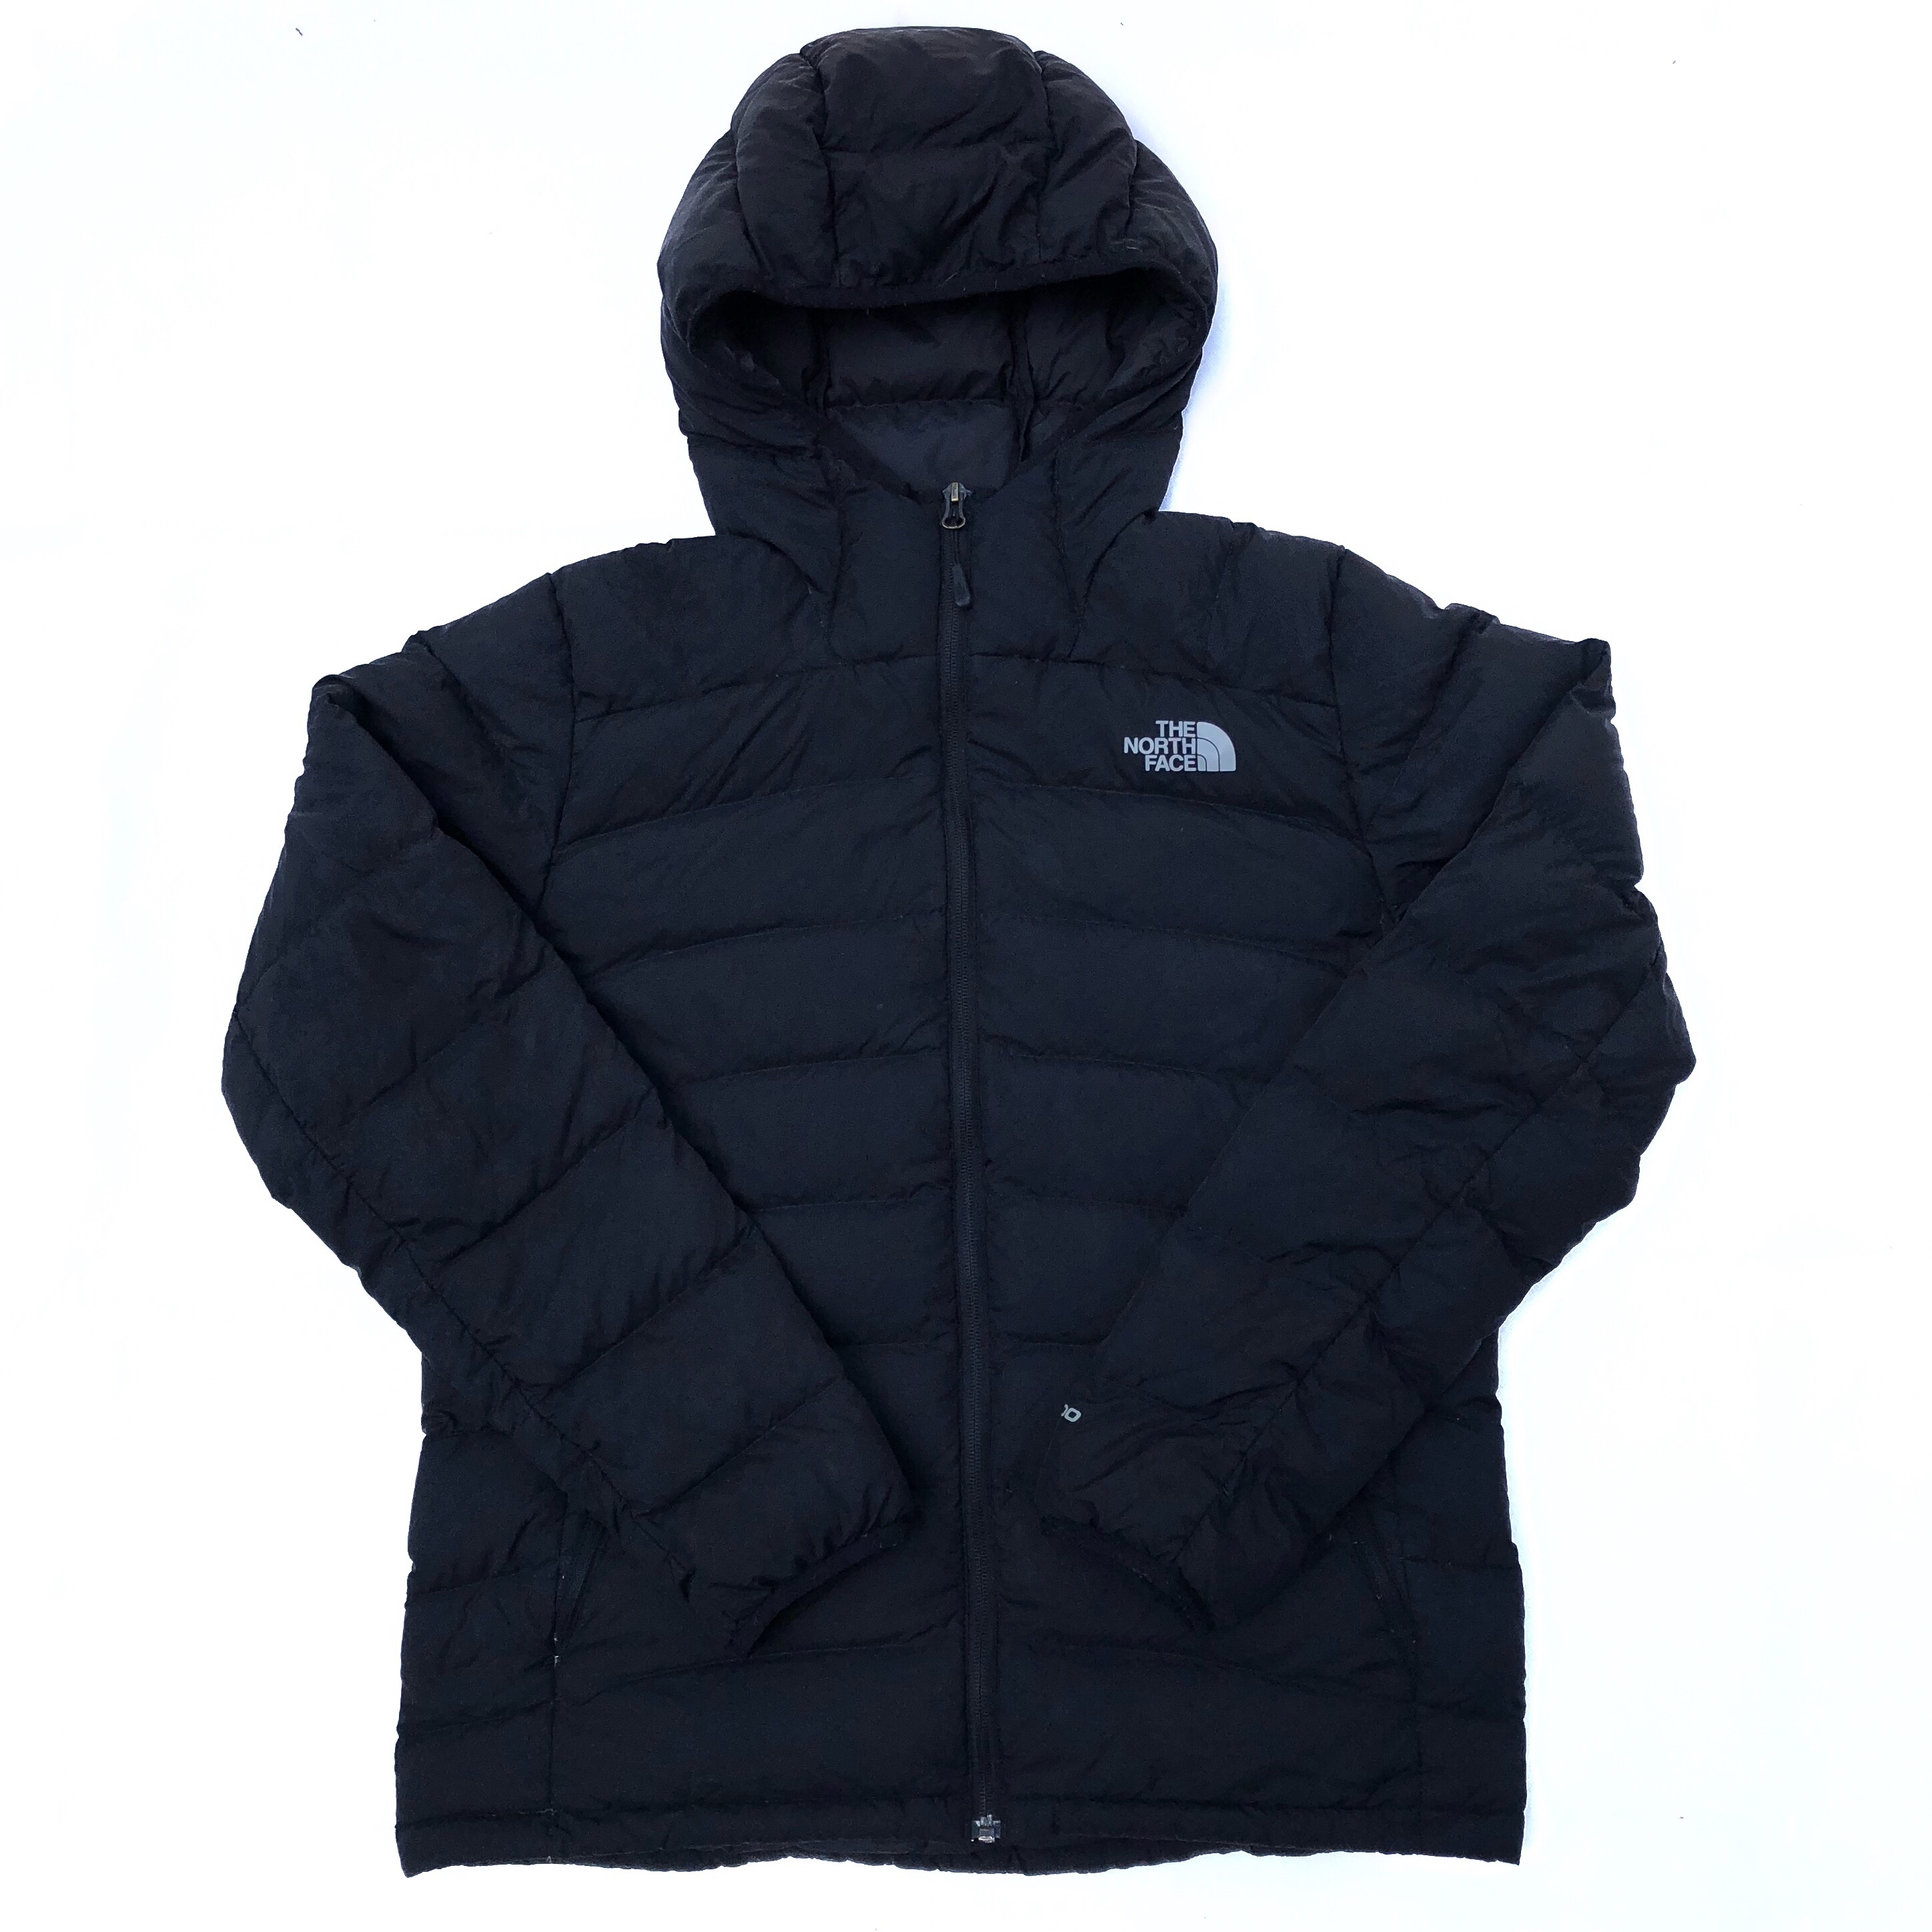 9418b2bc5 The north face 600 down Le Paz puffer jacket //... - Depop